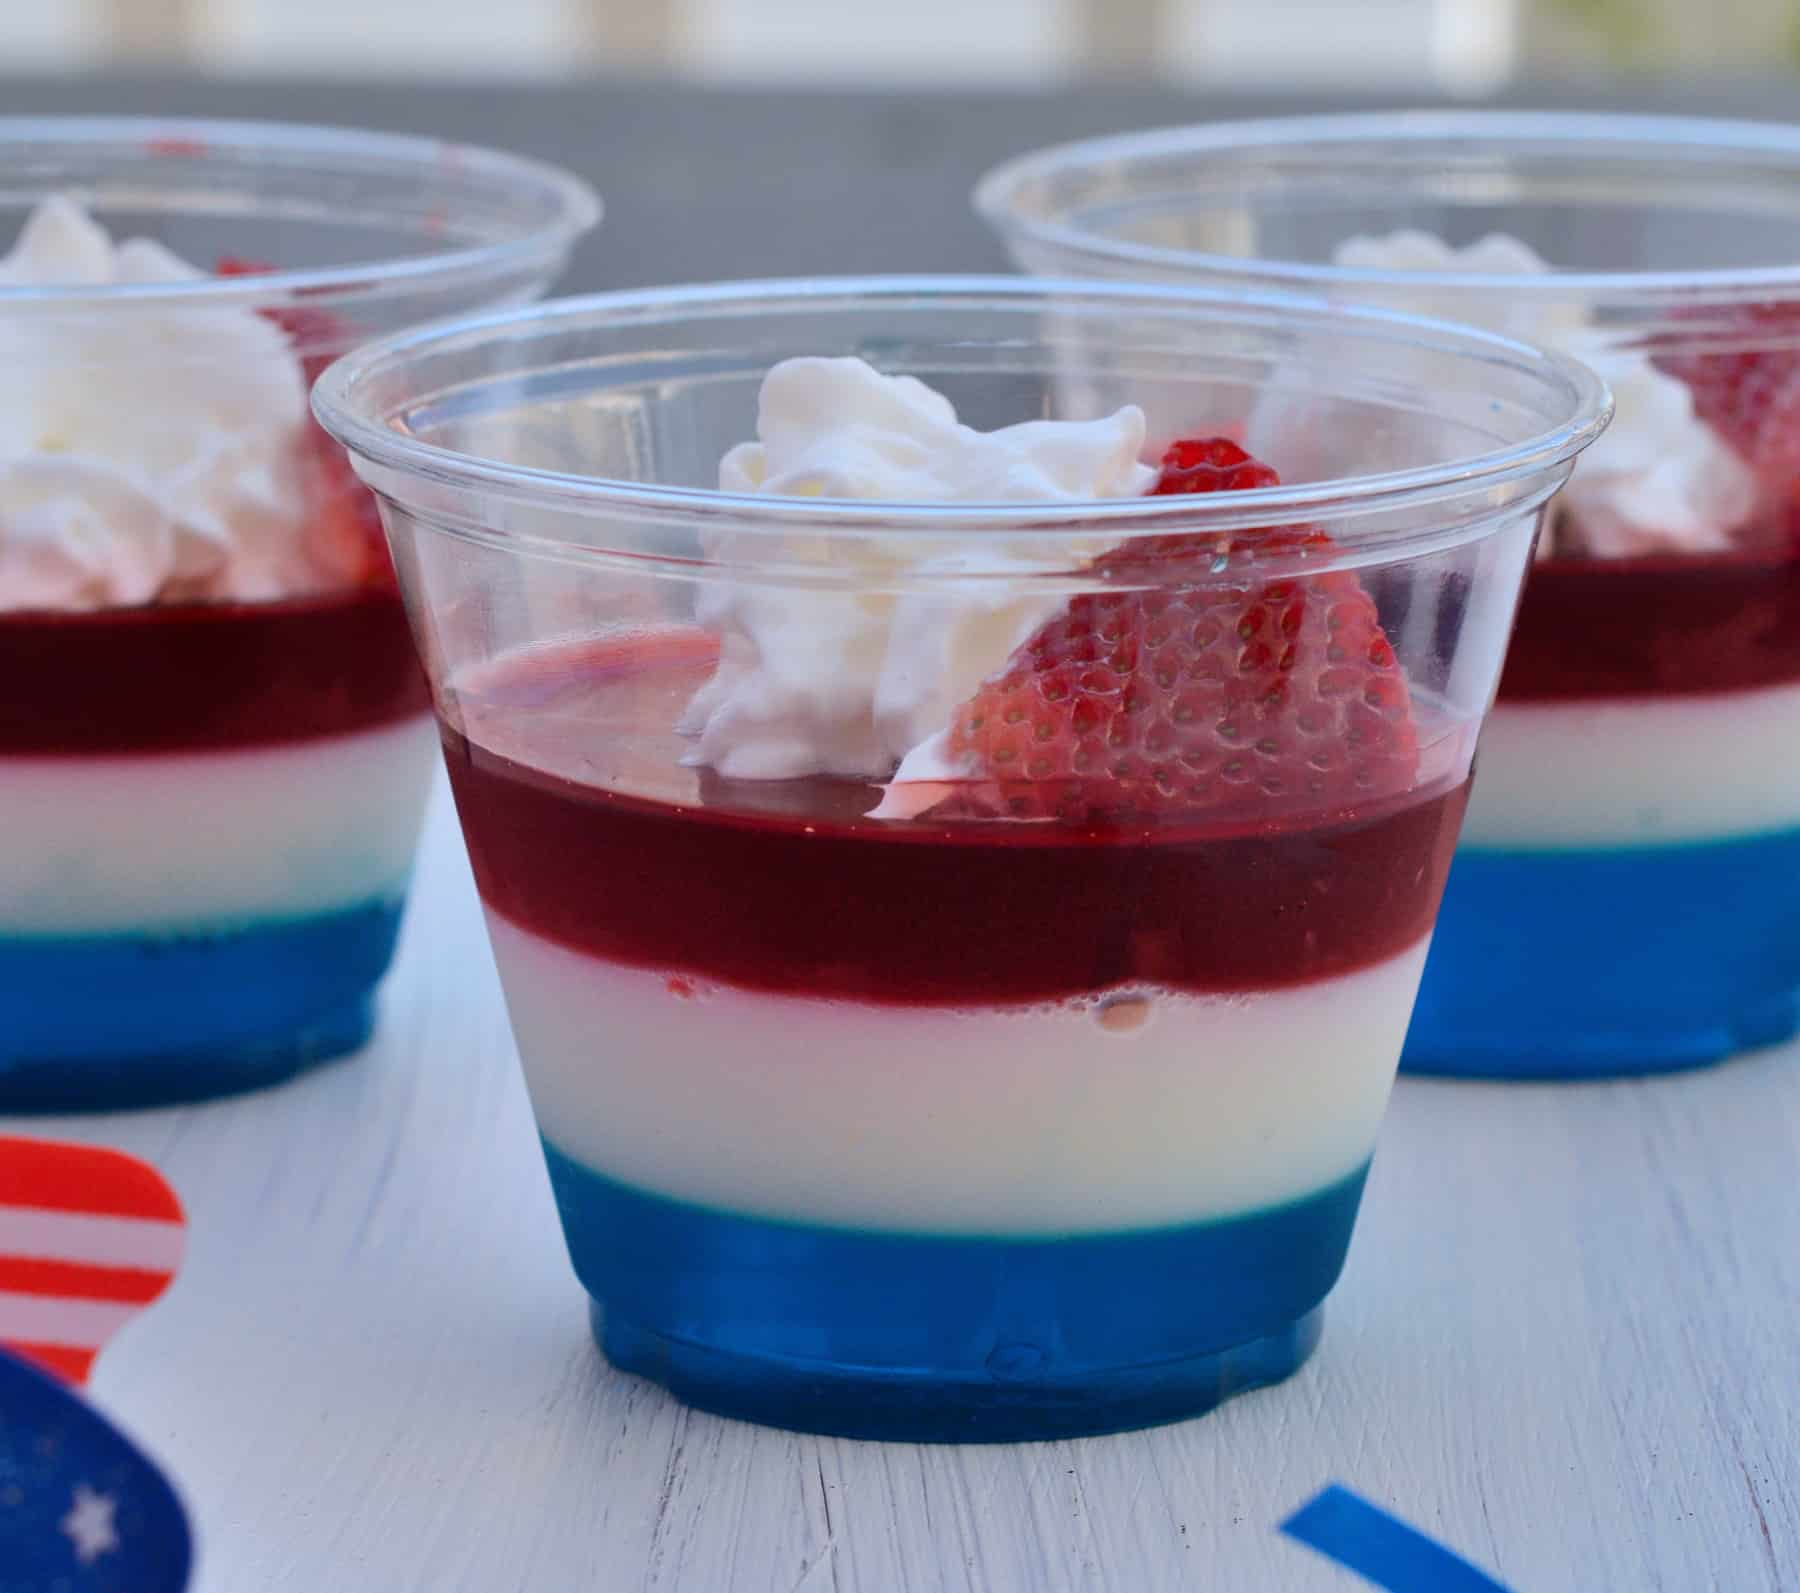 Red, White and Blue JELL-O Cups are a simple and festive addition to any summertime celebration. Easy to make and unbelievably tasty! #redwhiteandbluejellocups #jellocups www.savoryexperiments.com